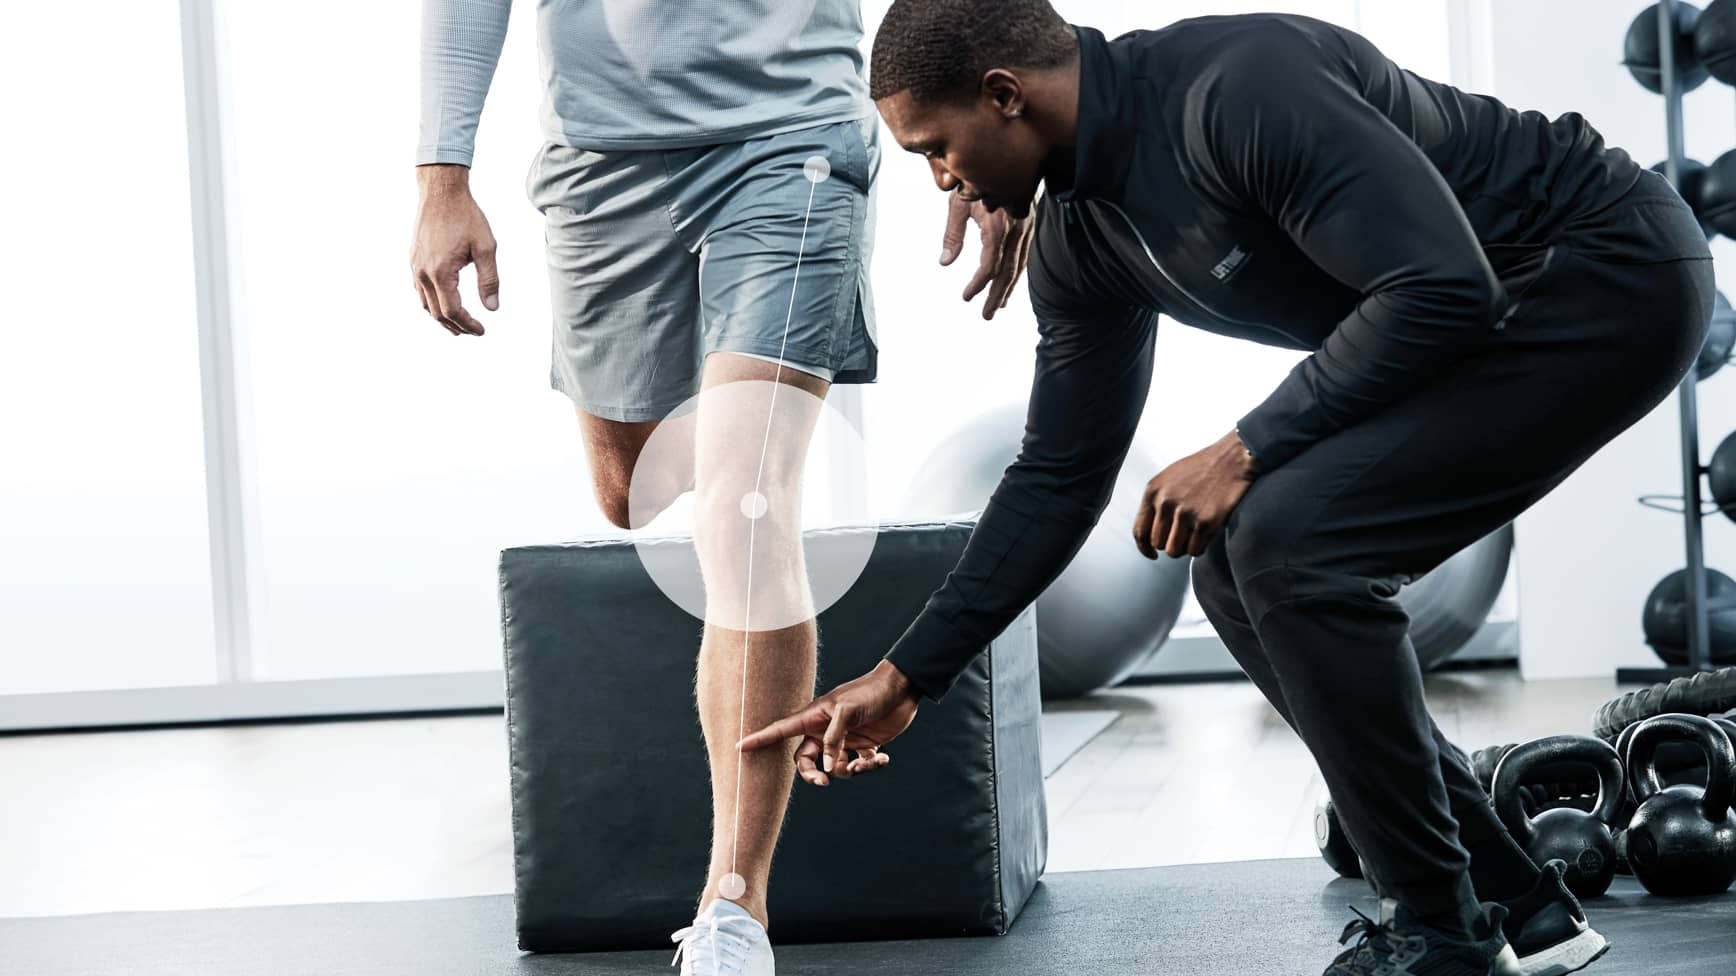 A Life Time trainer helps his client with proper form during an exercise